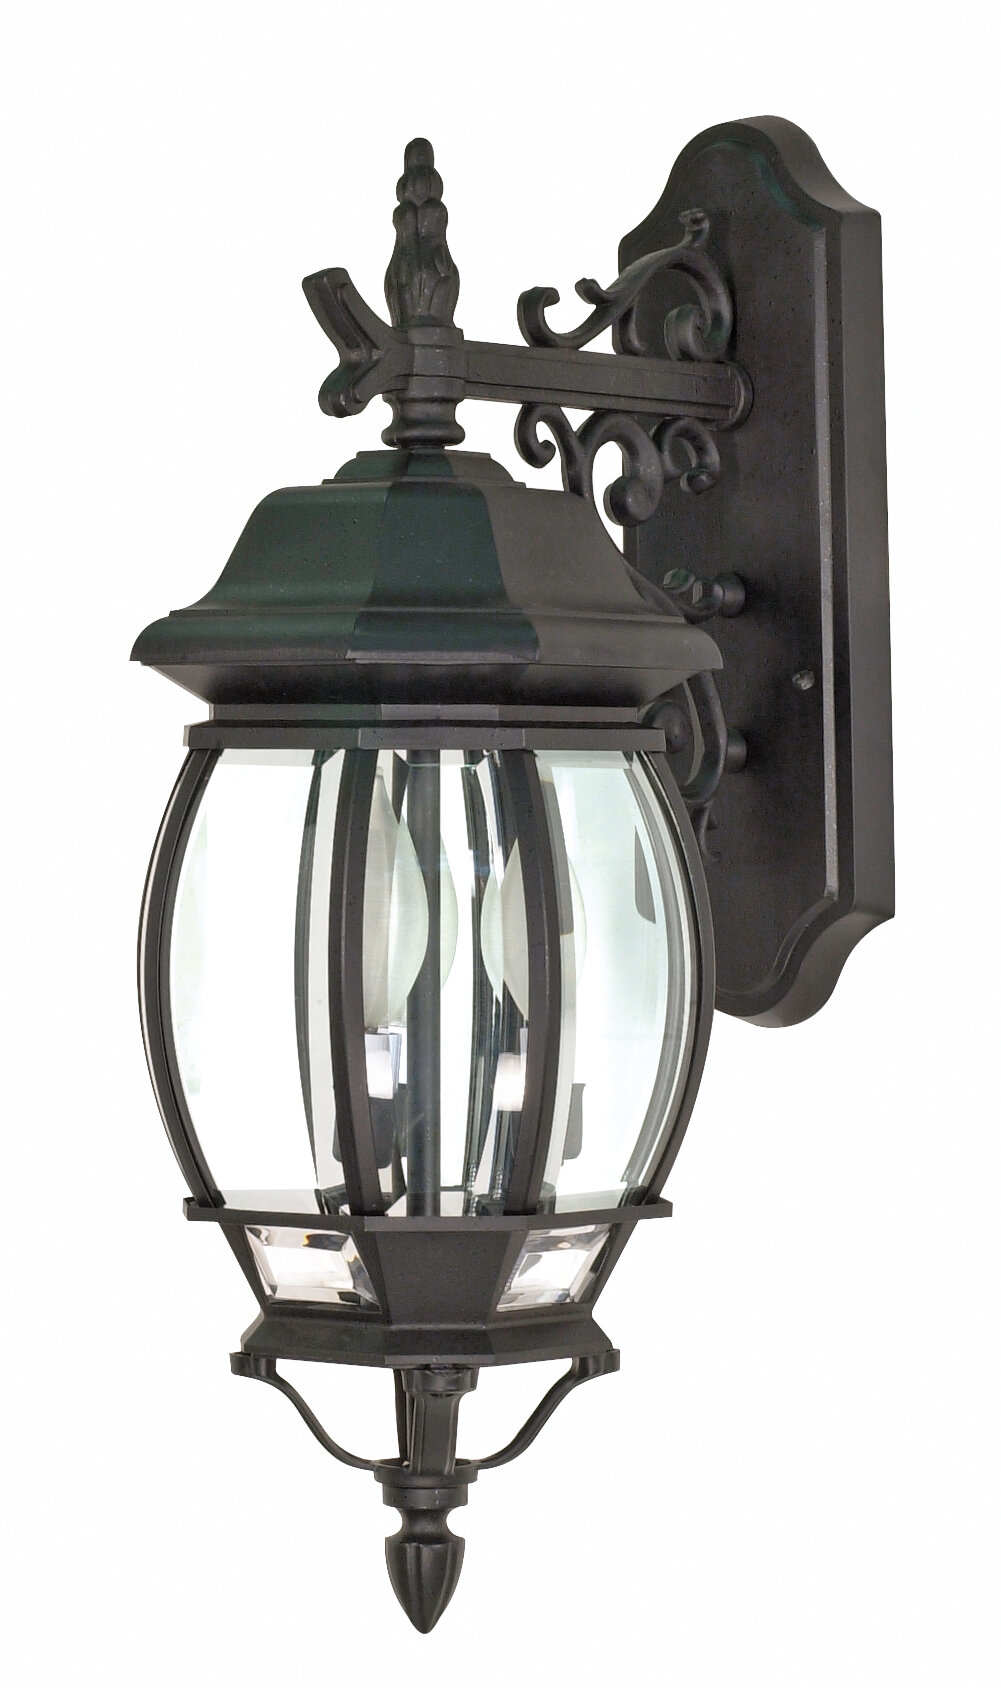 Gillian 3 Light Outdoor Wall Lantern Reviews Joss Main